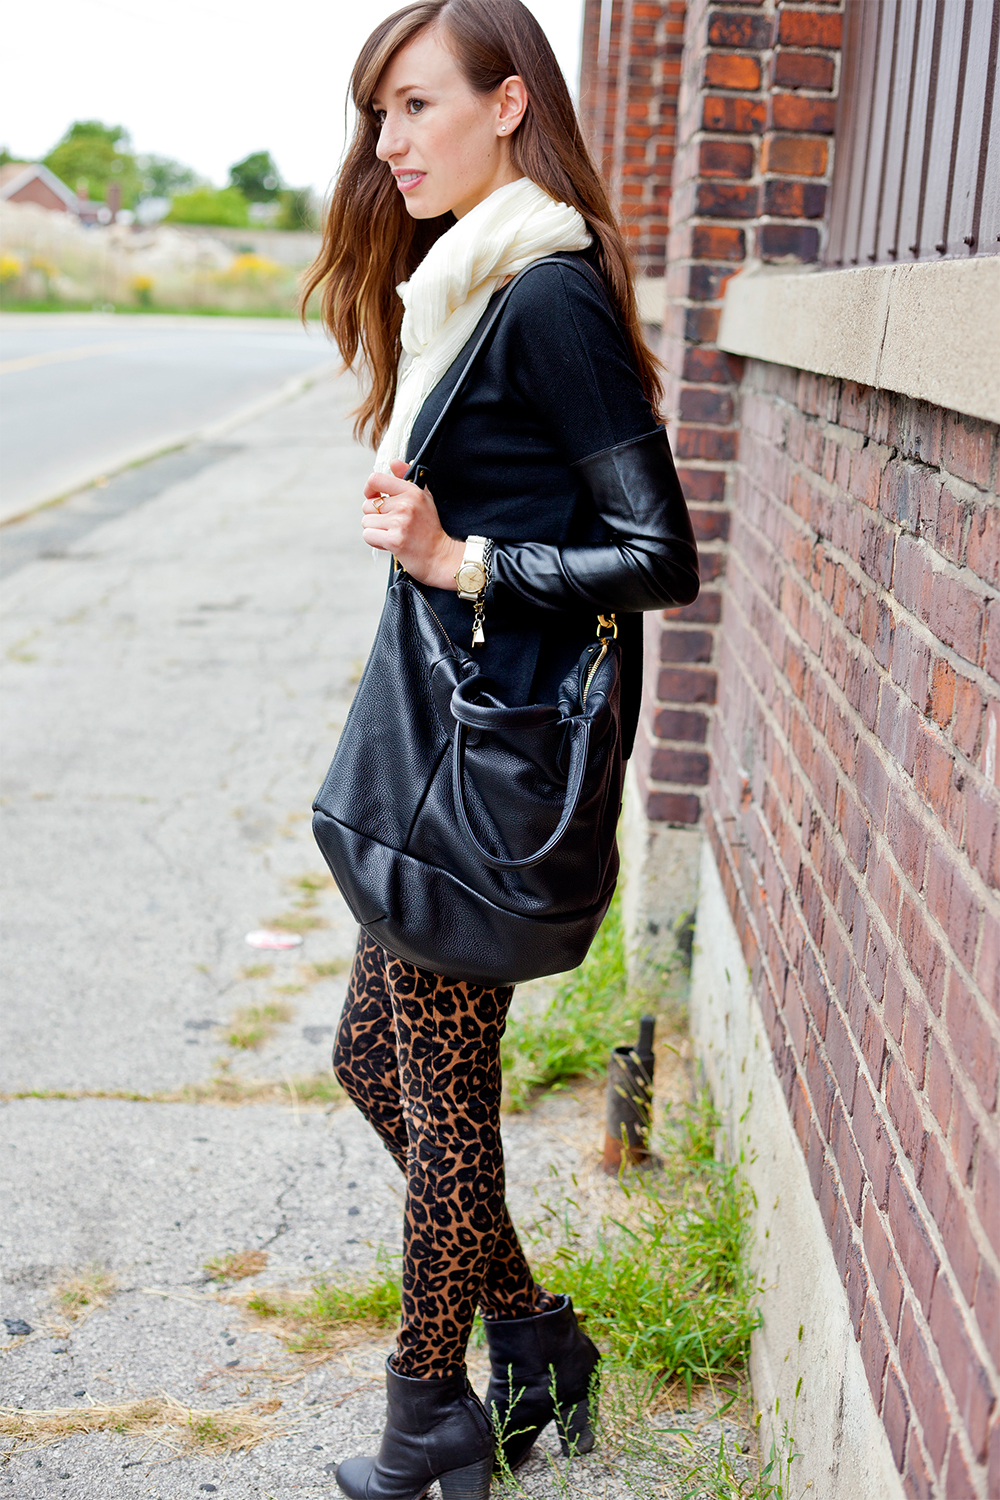 Style Bee in black and leopard print.